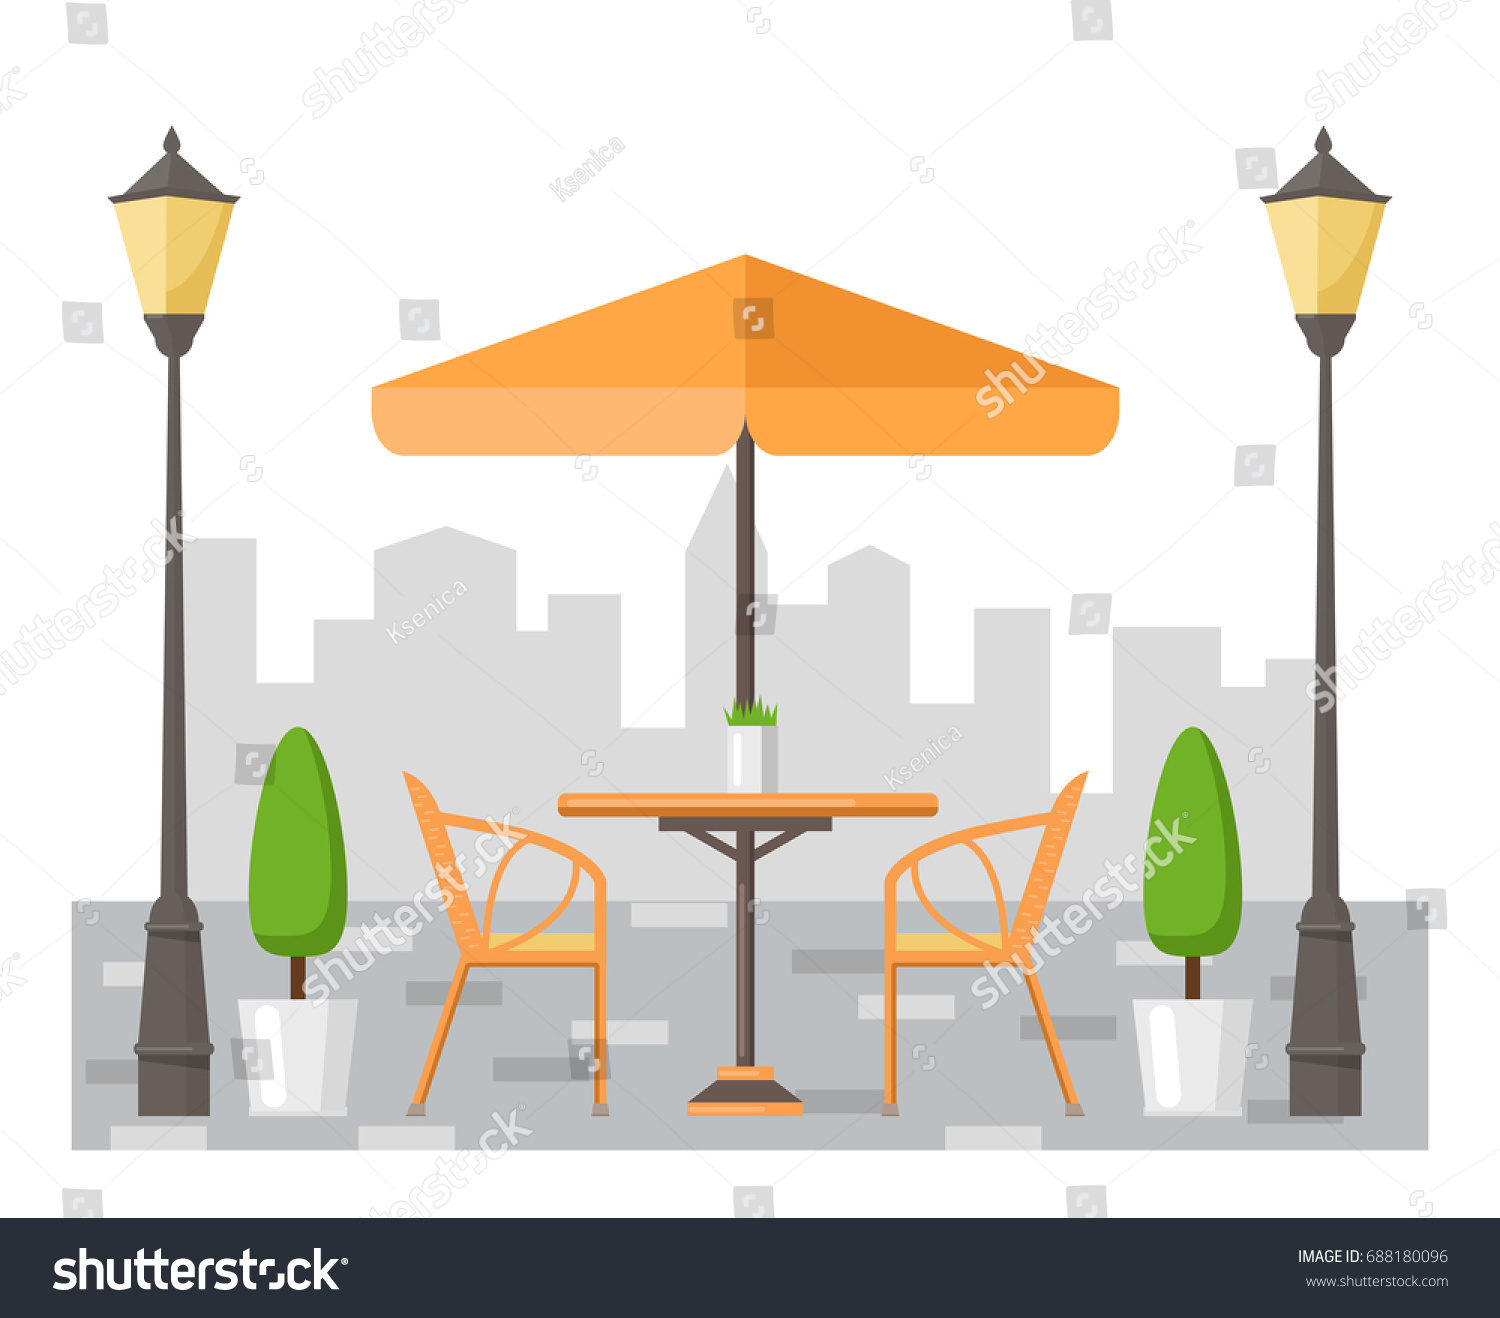 Summer Table And Chairs Part - 50: Summer Street Cafe. Table And Chairs Under The Umbrella. Flat Design.  Vector Illustration